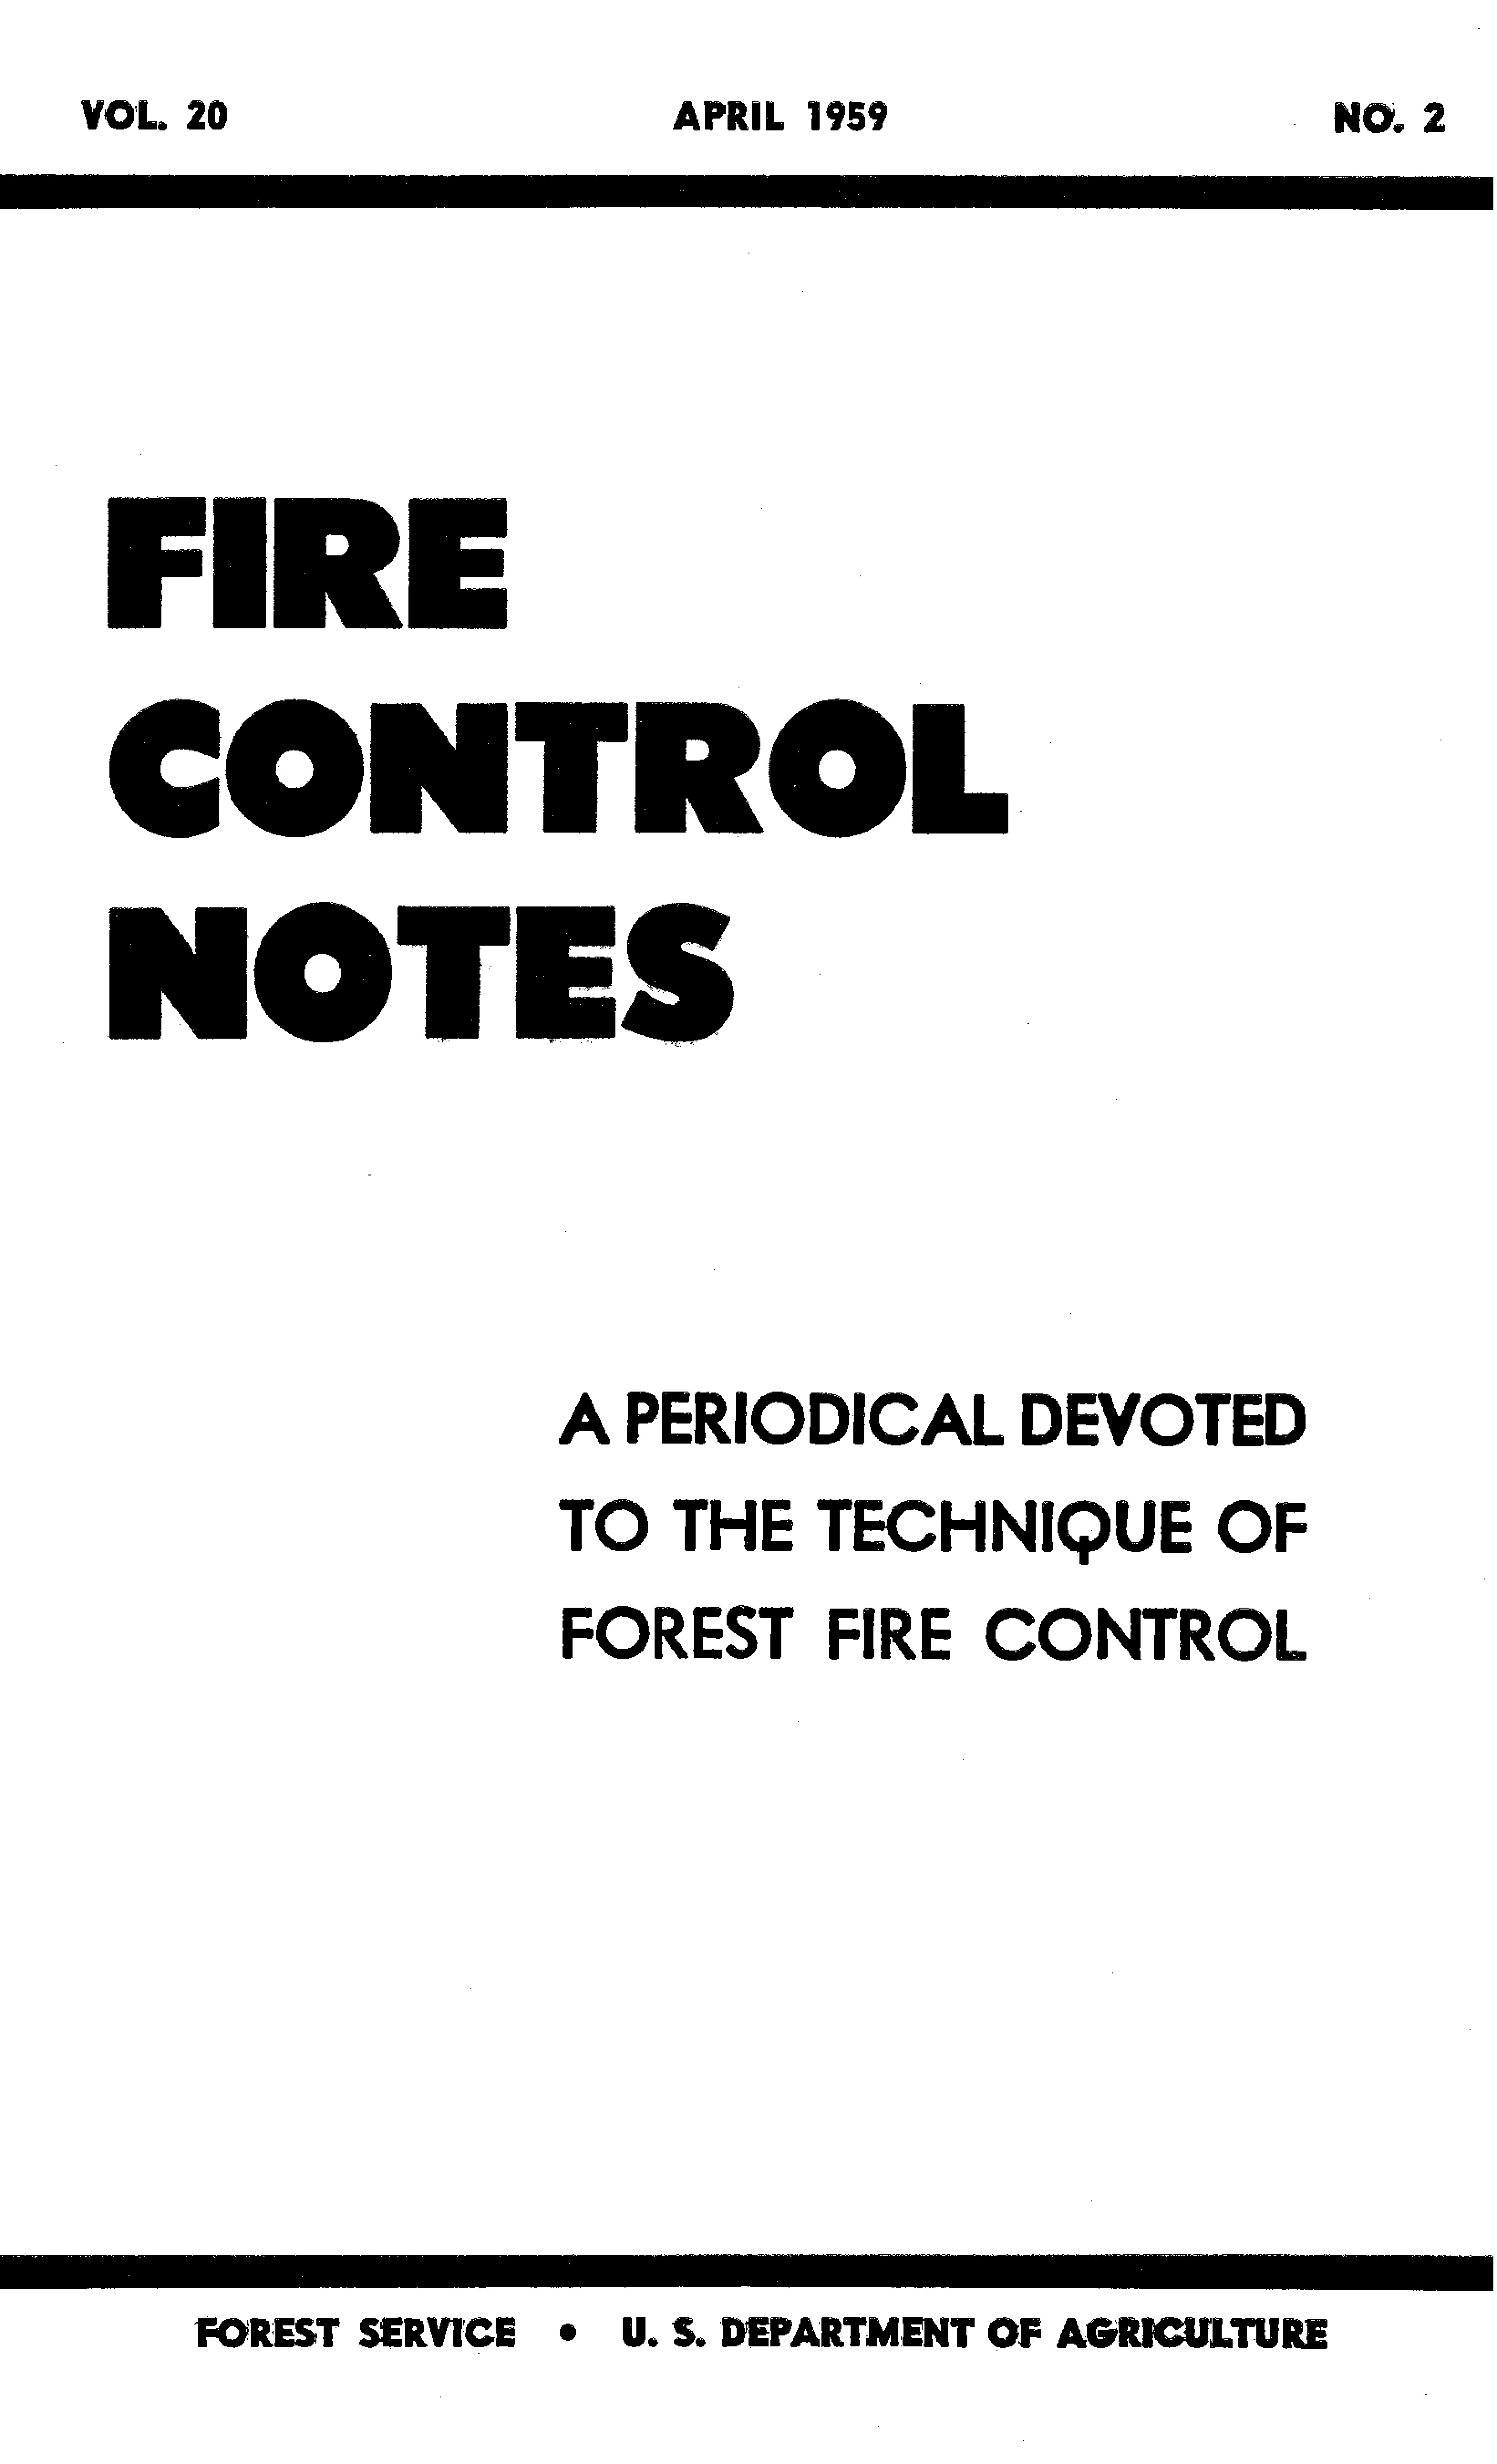 Cover of Fire Management Today Volume 20, Issue 02